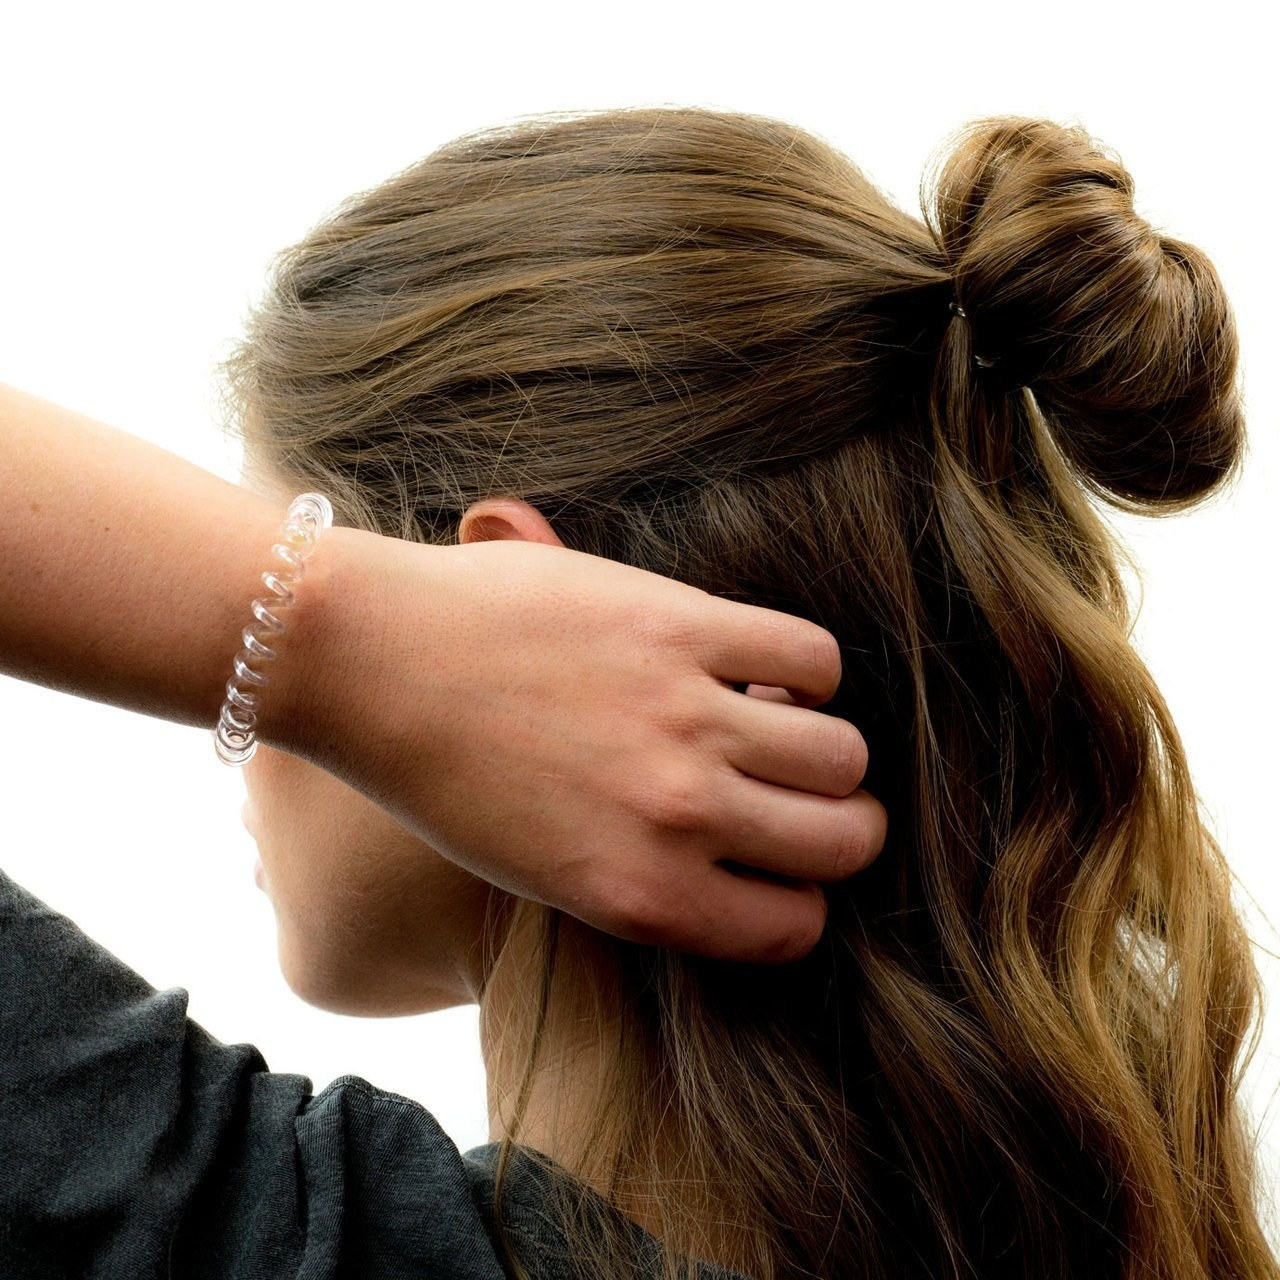 Model wearing the coil in their hair and on their wrist